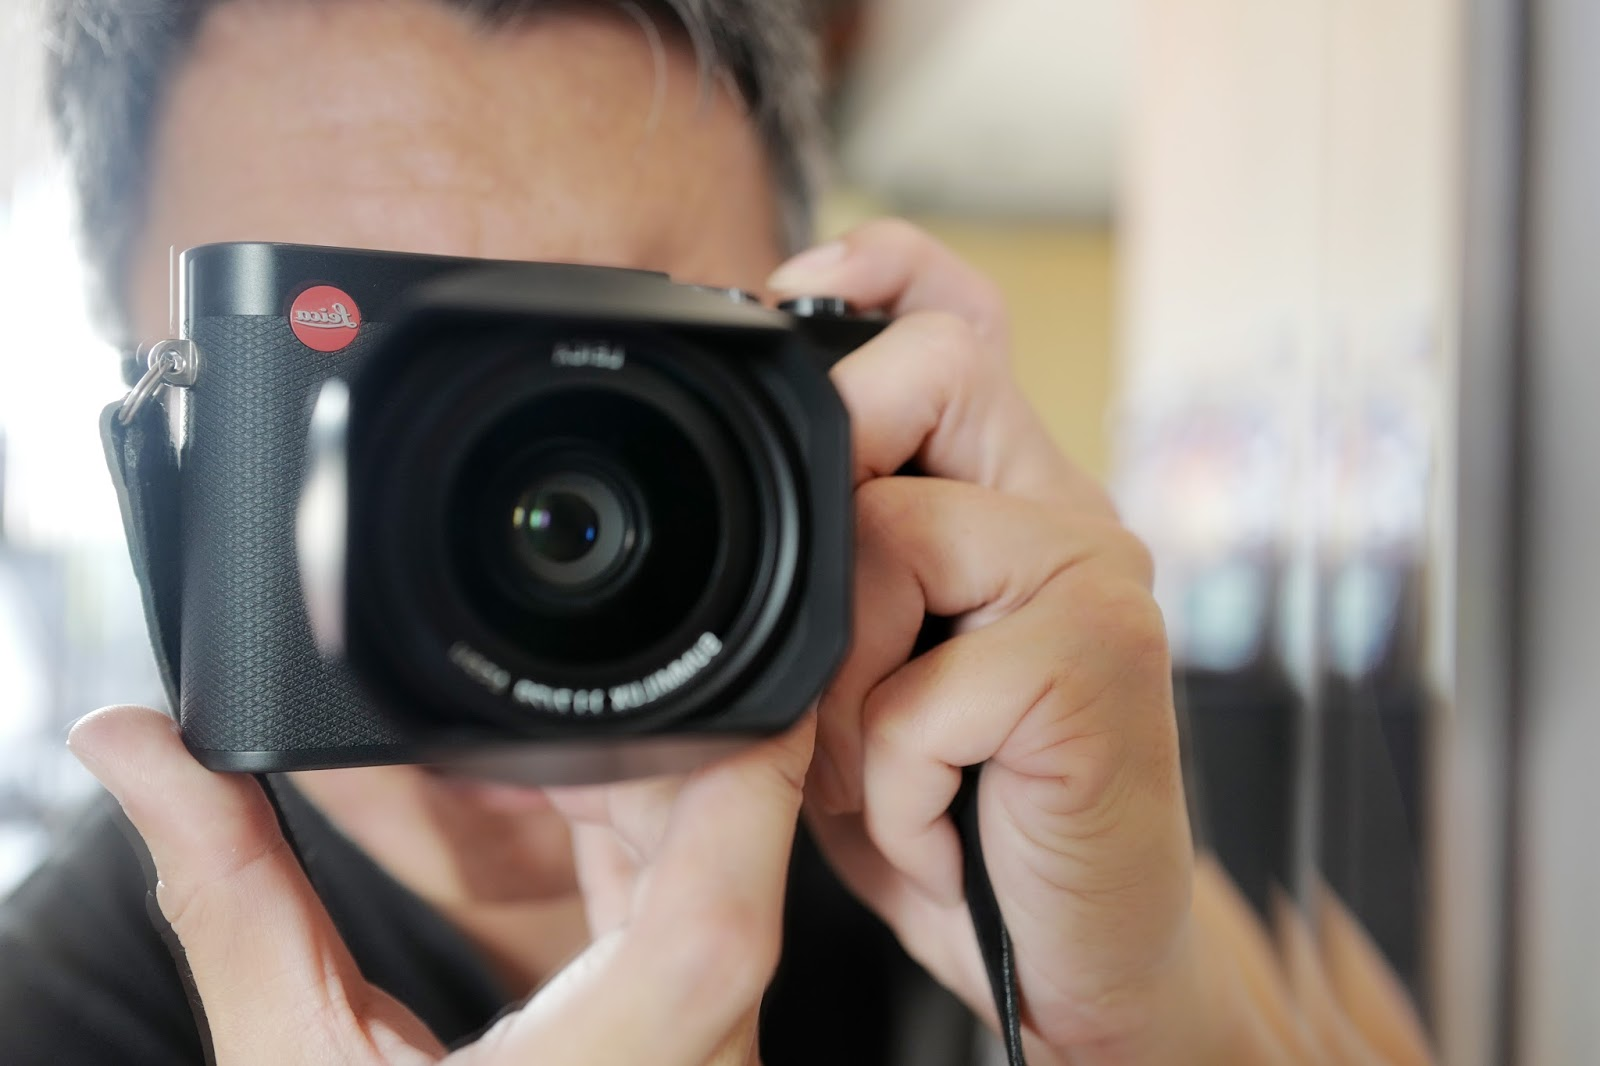 aik kian photography+: Leica Q: Hands-On, Impression & Sample Images